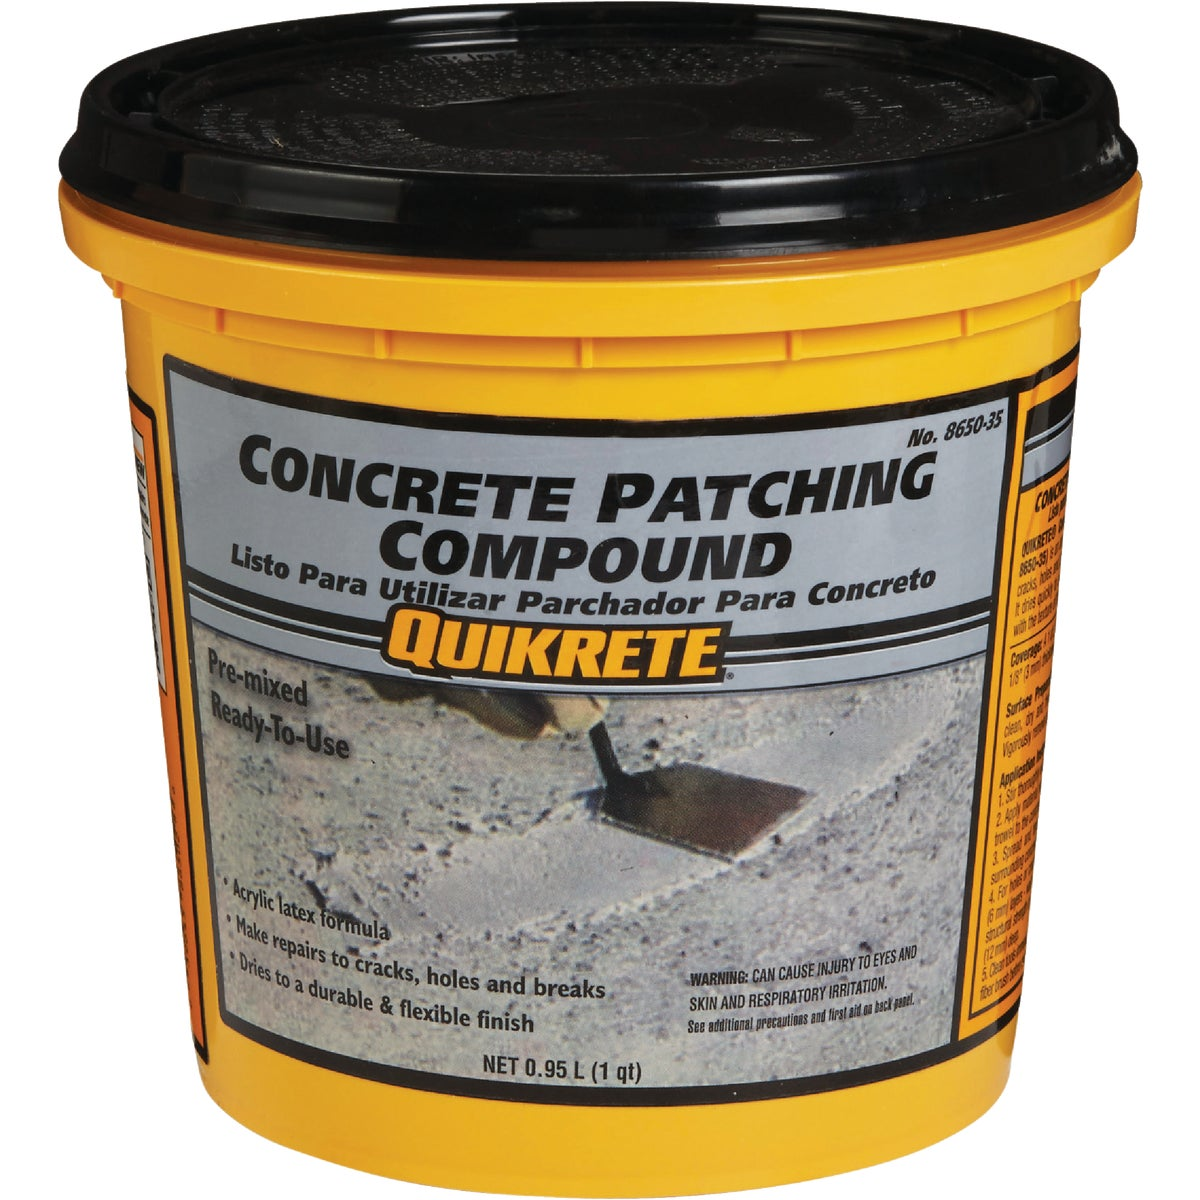 QT CONCRT PATCH COMPOUND - 8650-35 by Quikrete Co